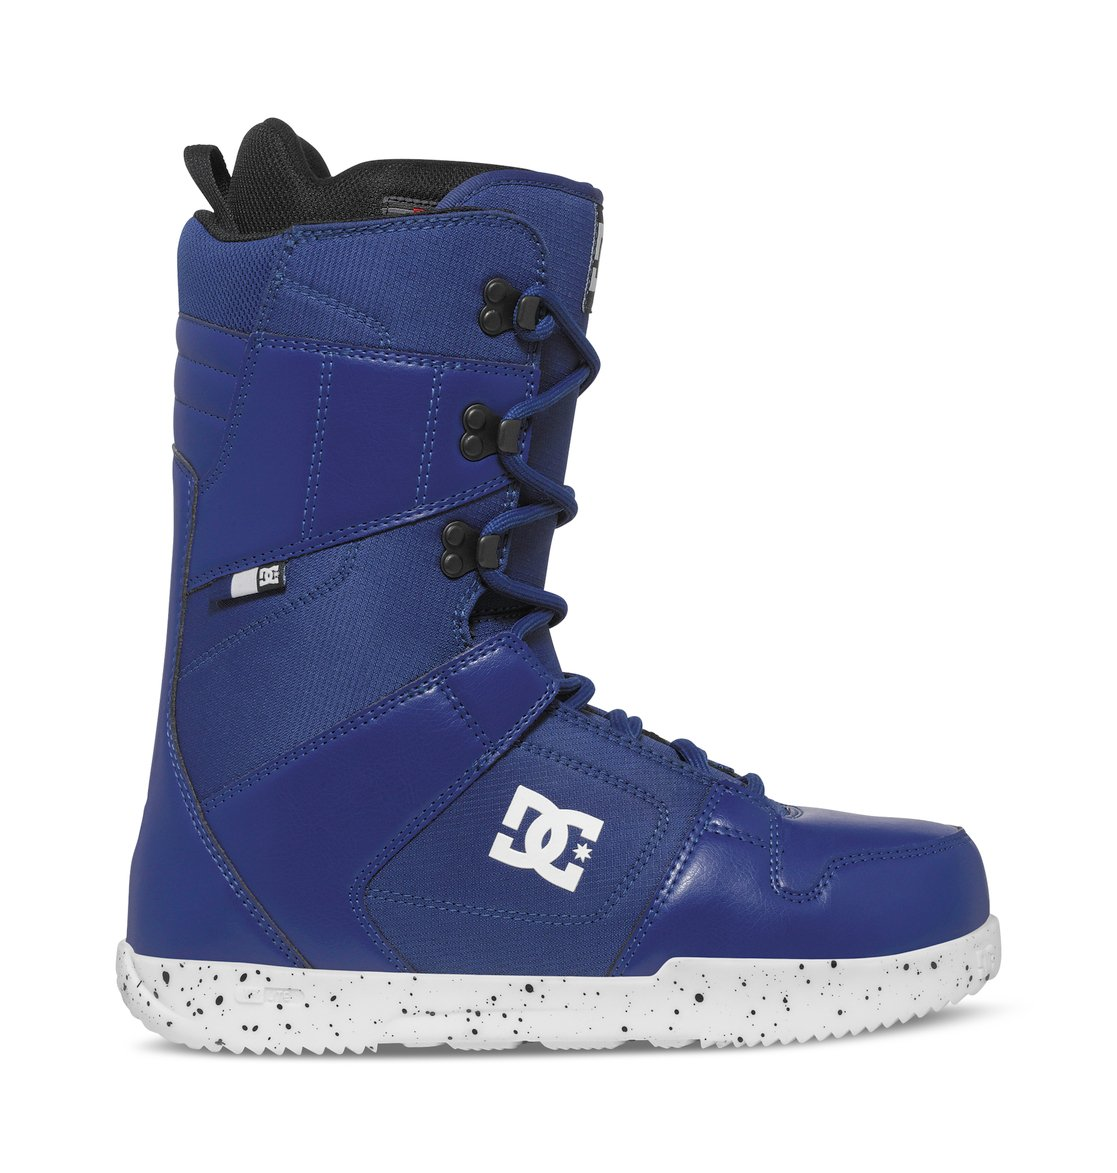 phase snowboard boots adyo200022 dc shoes